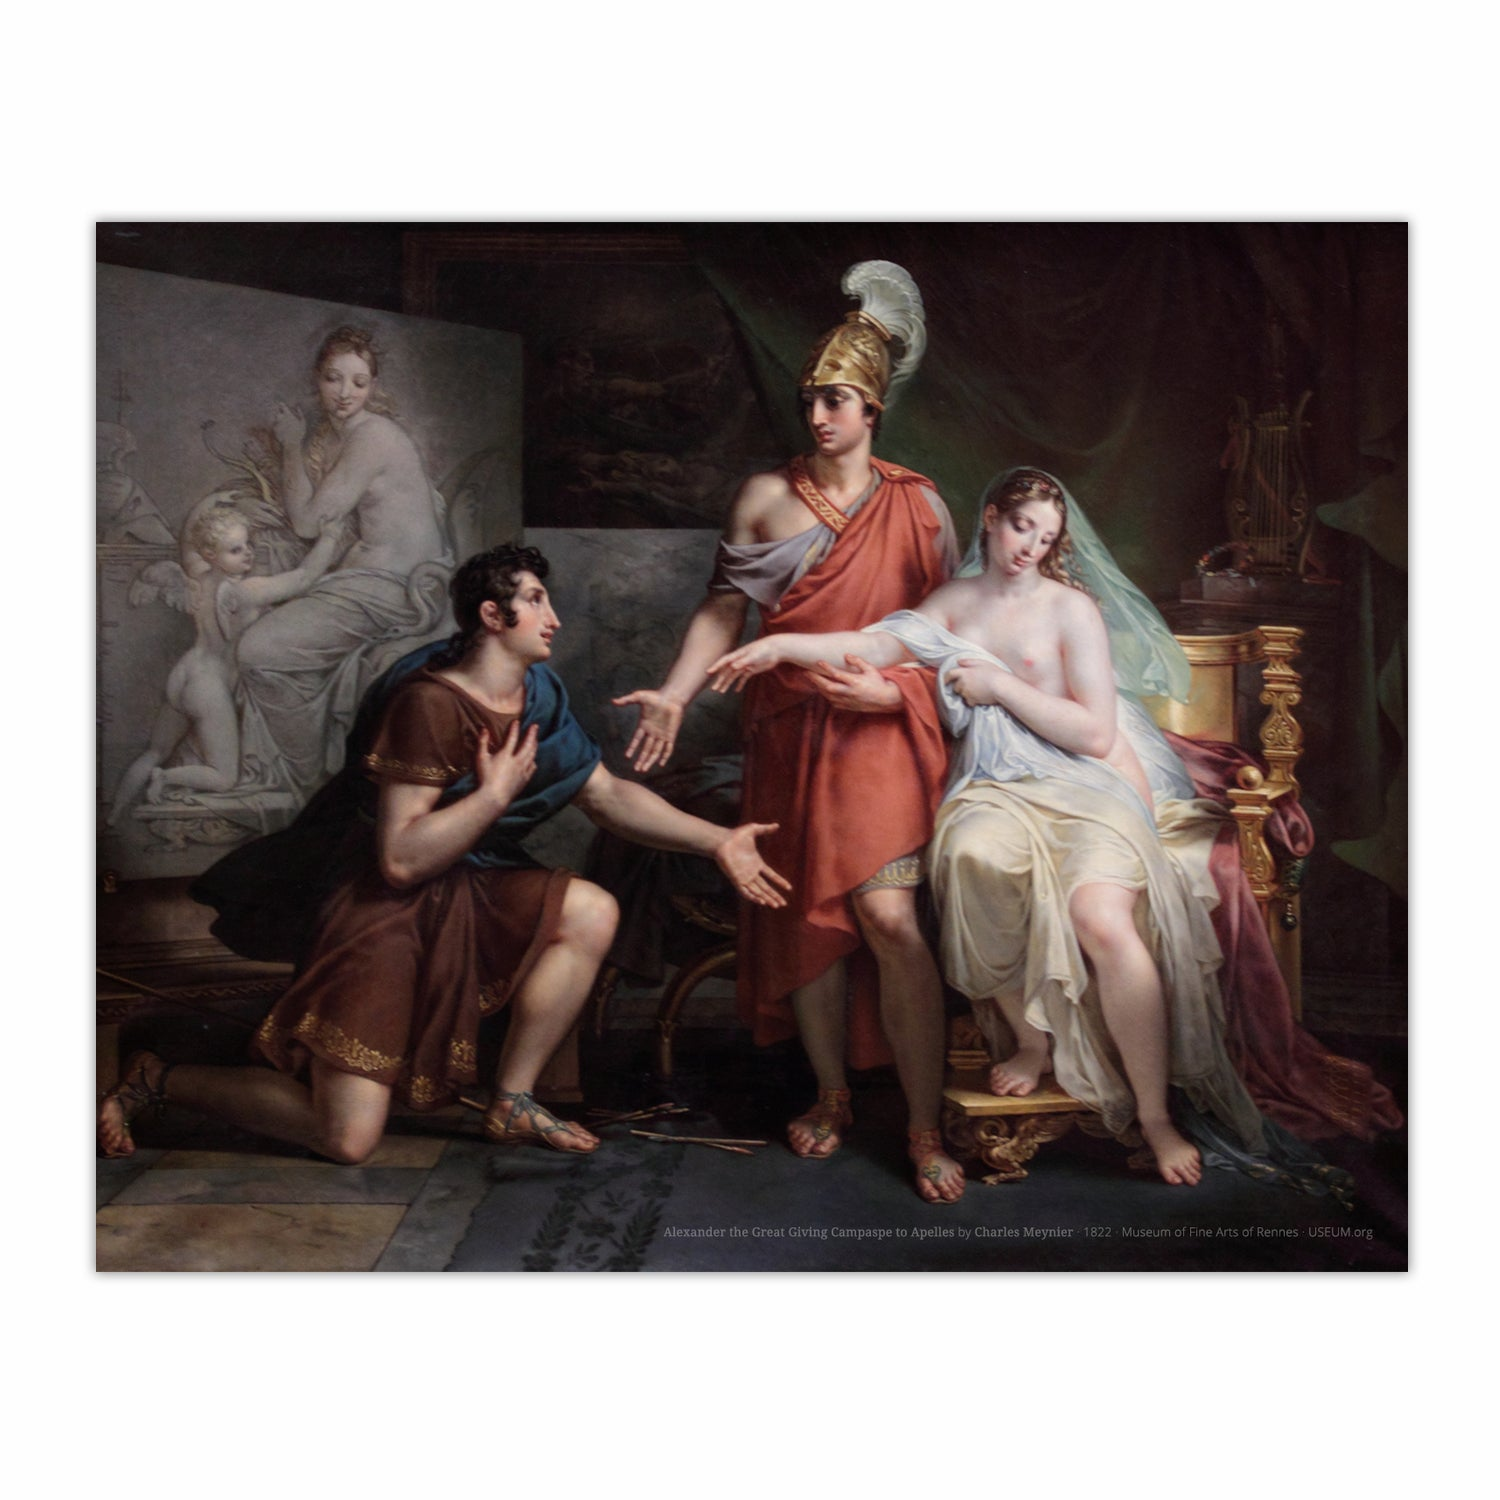 Alexander the Great Giving Campaspe to Apelles